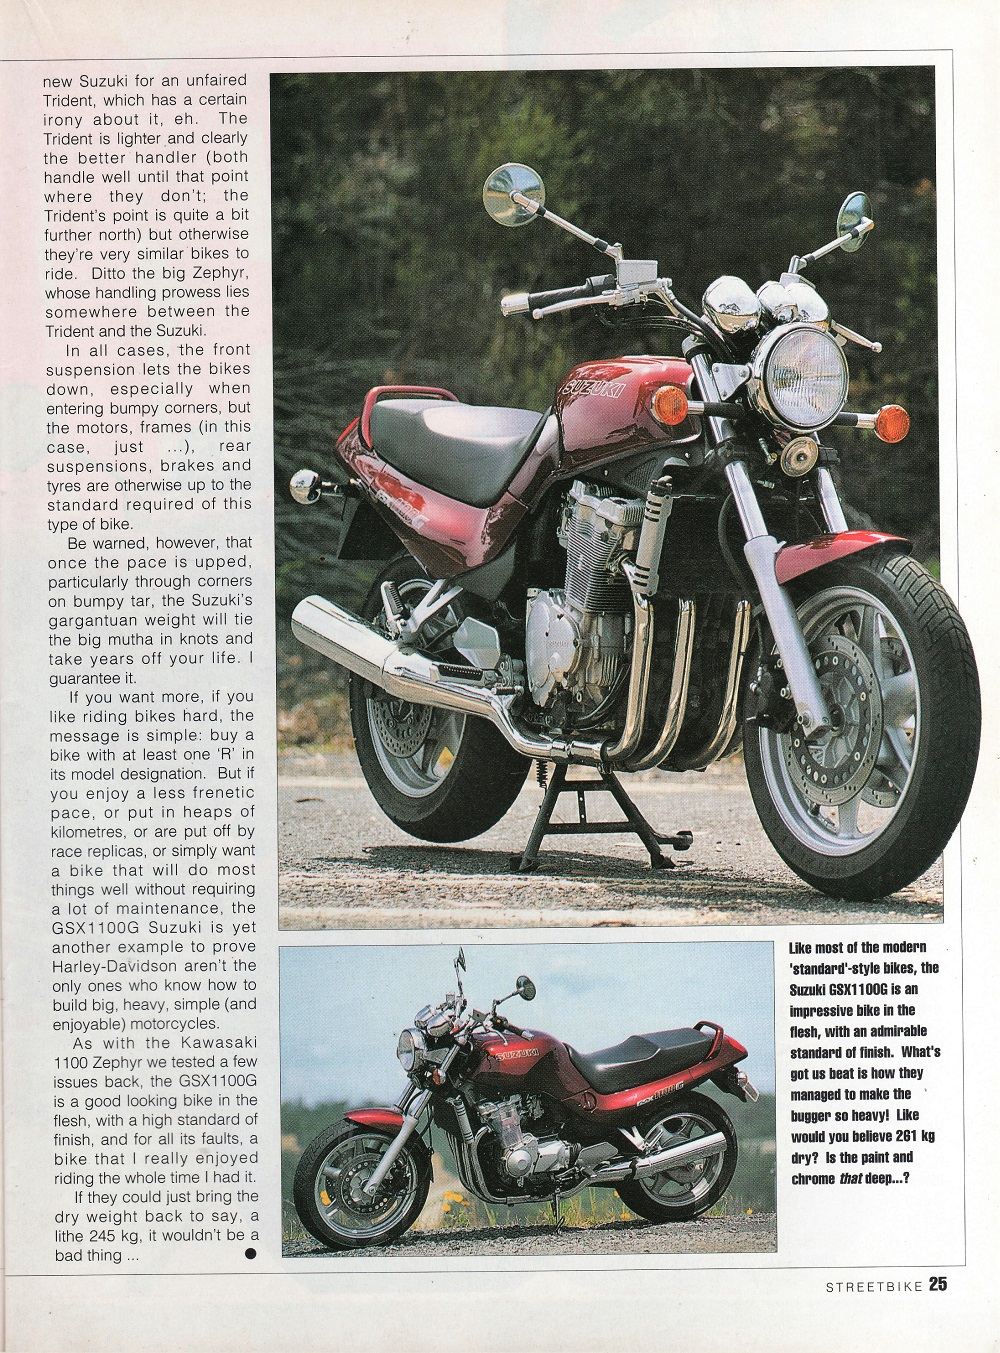 1993 Suzuki GSX 1100G road test. 2.jpg